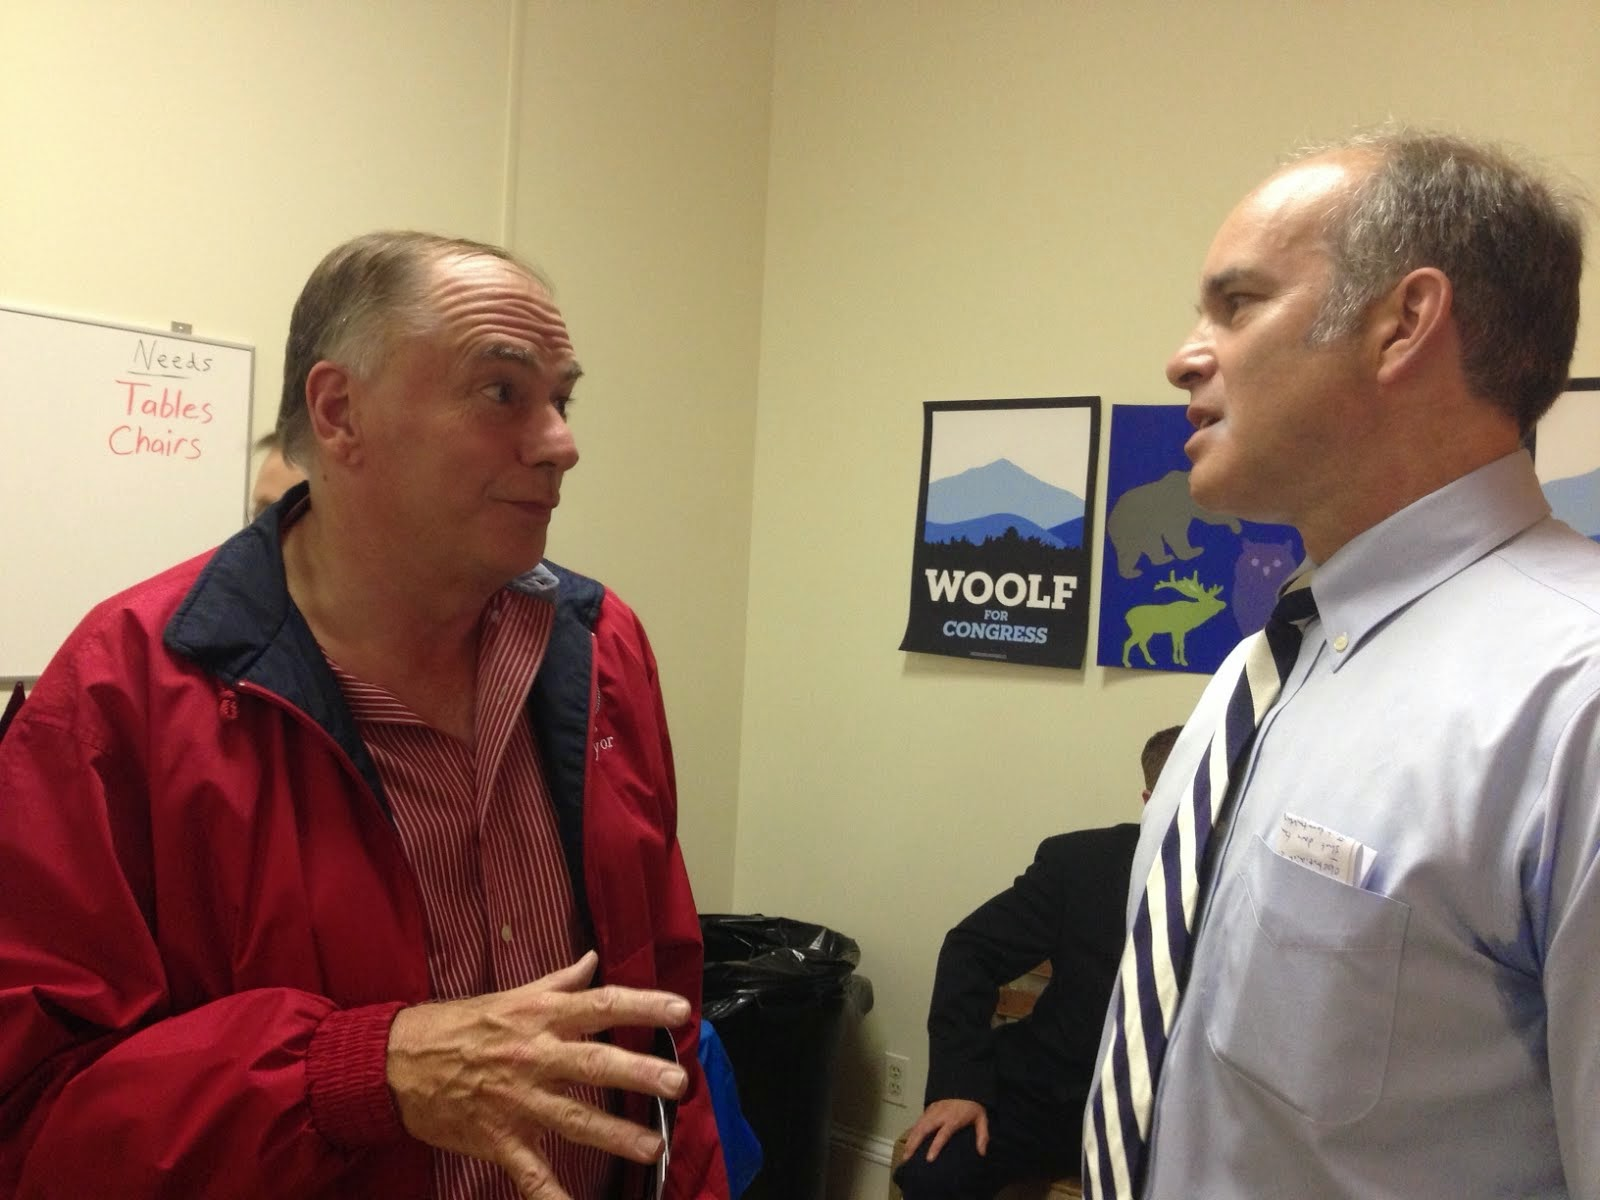 Aaron Woolf Chats With Me After the Rally